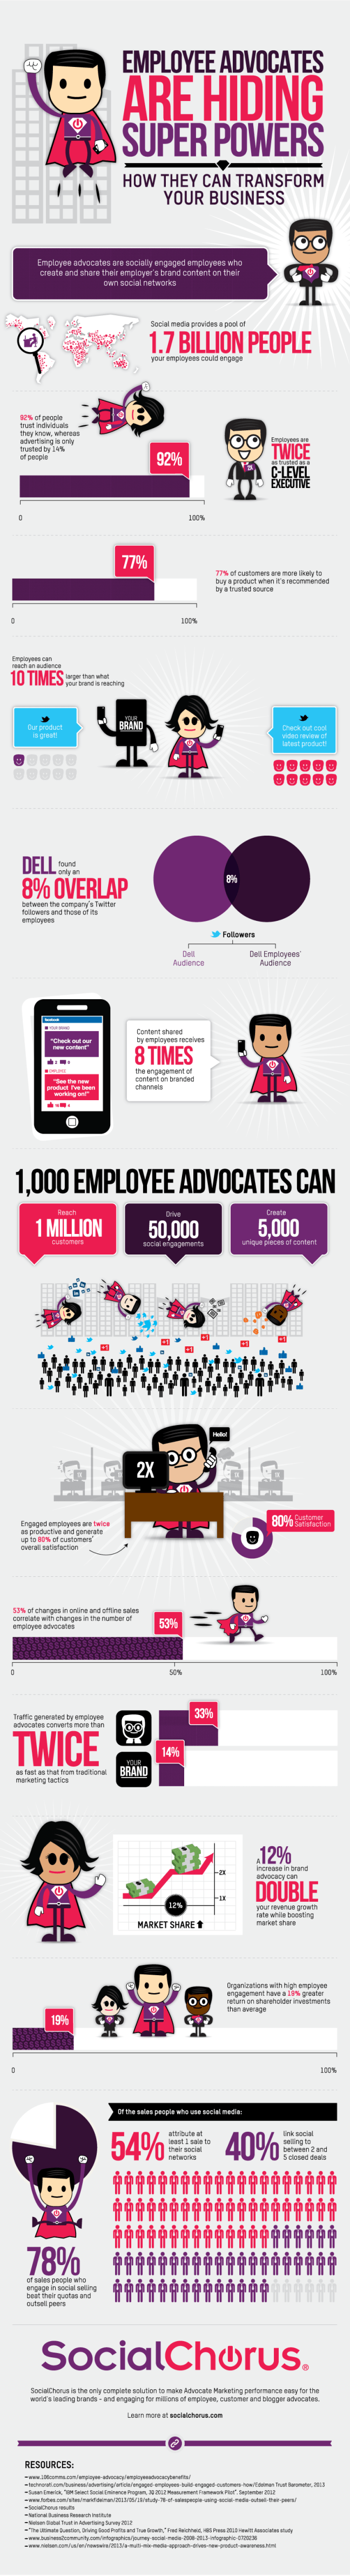 Employee Advocates are Hiding Super Powers Infographic by @socialchorus